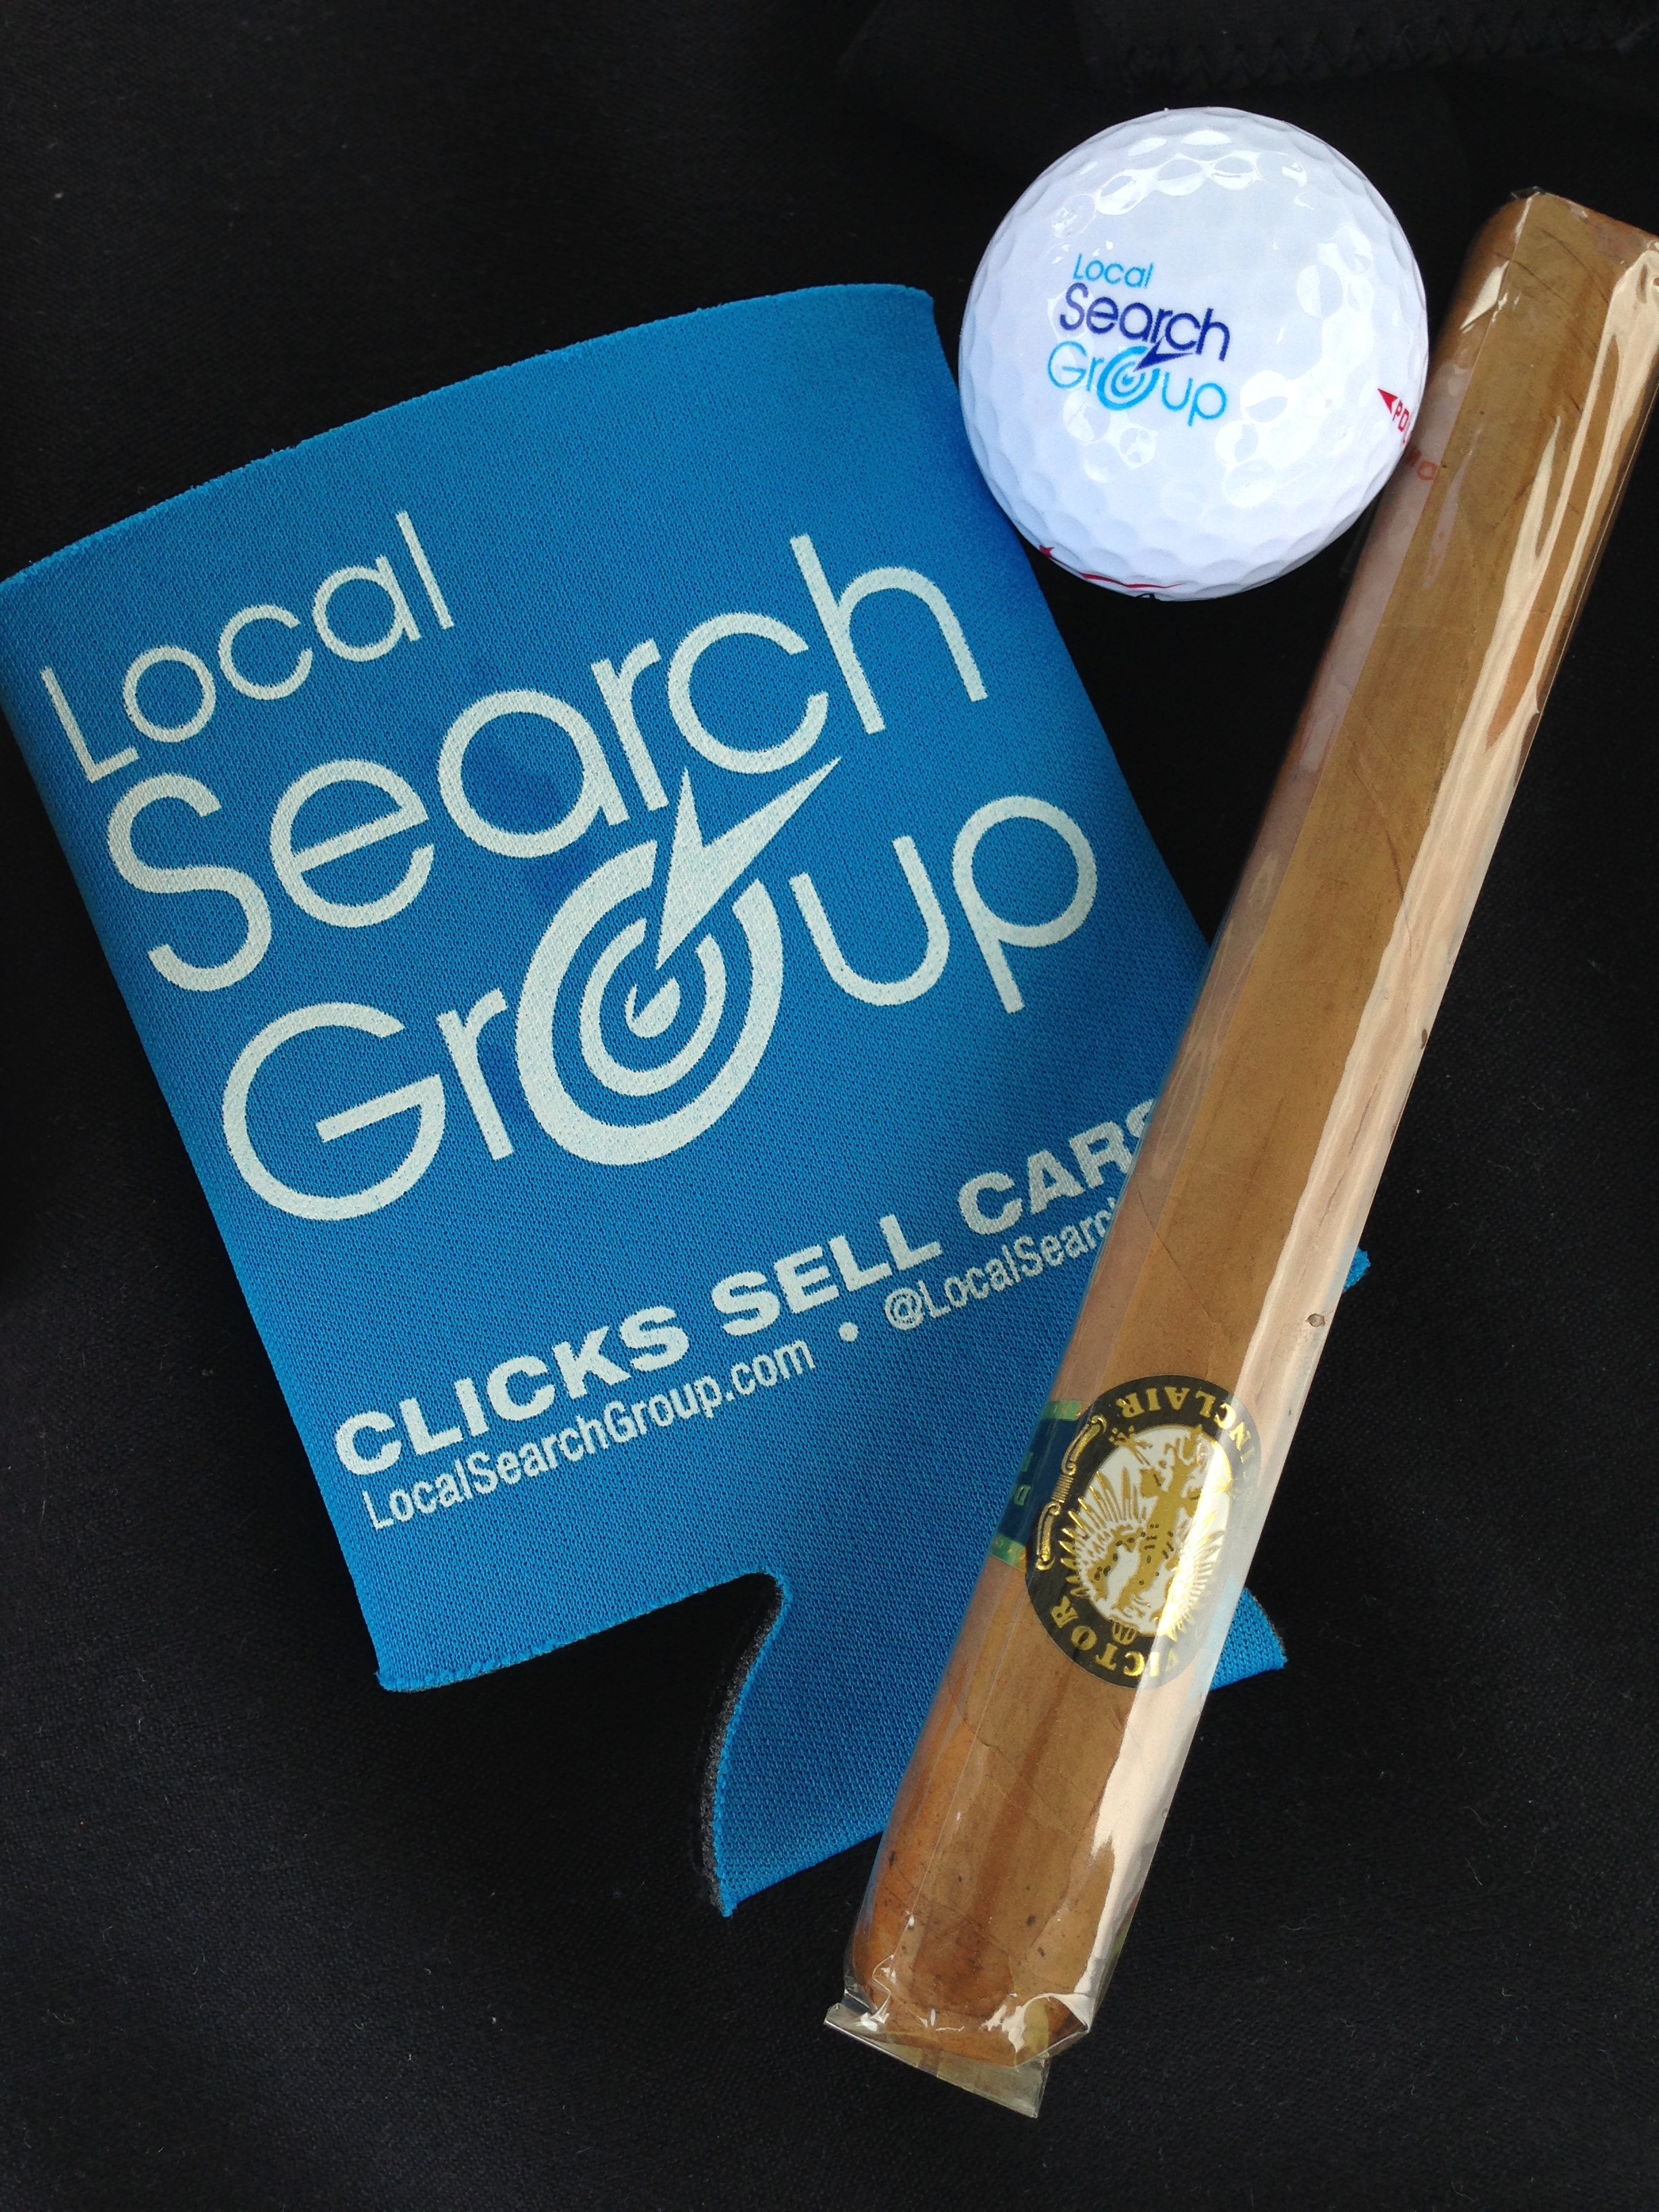 Local Search Group